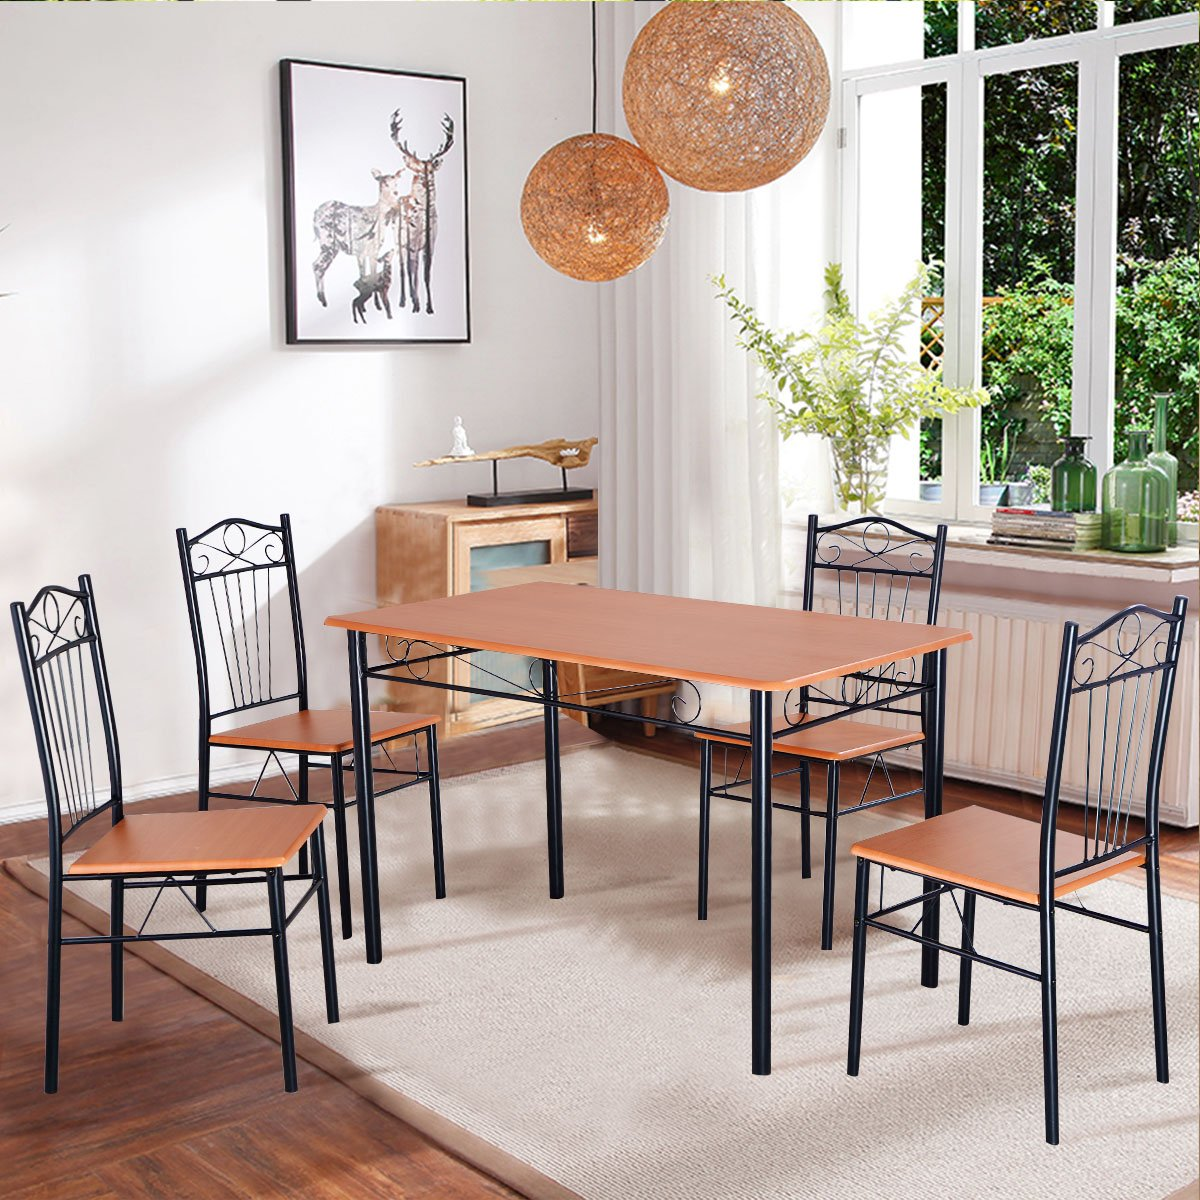 4 Chair Dining Set. Leicester Dining Set With Chairs Show All ...